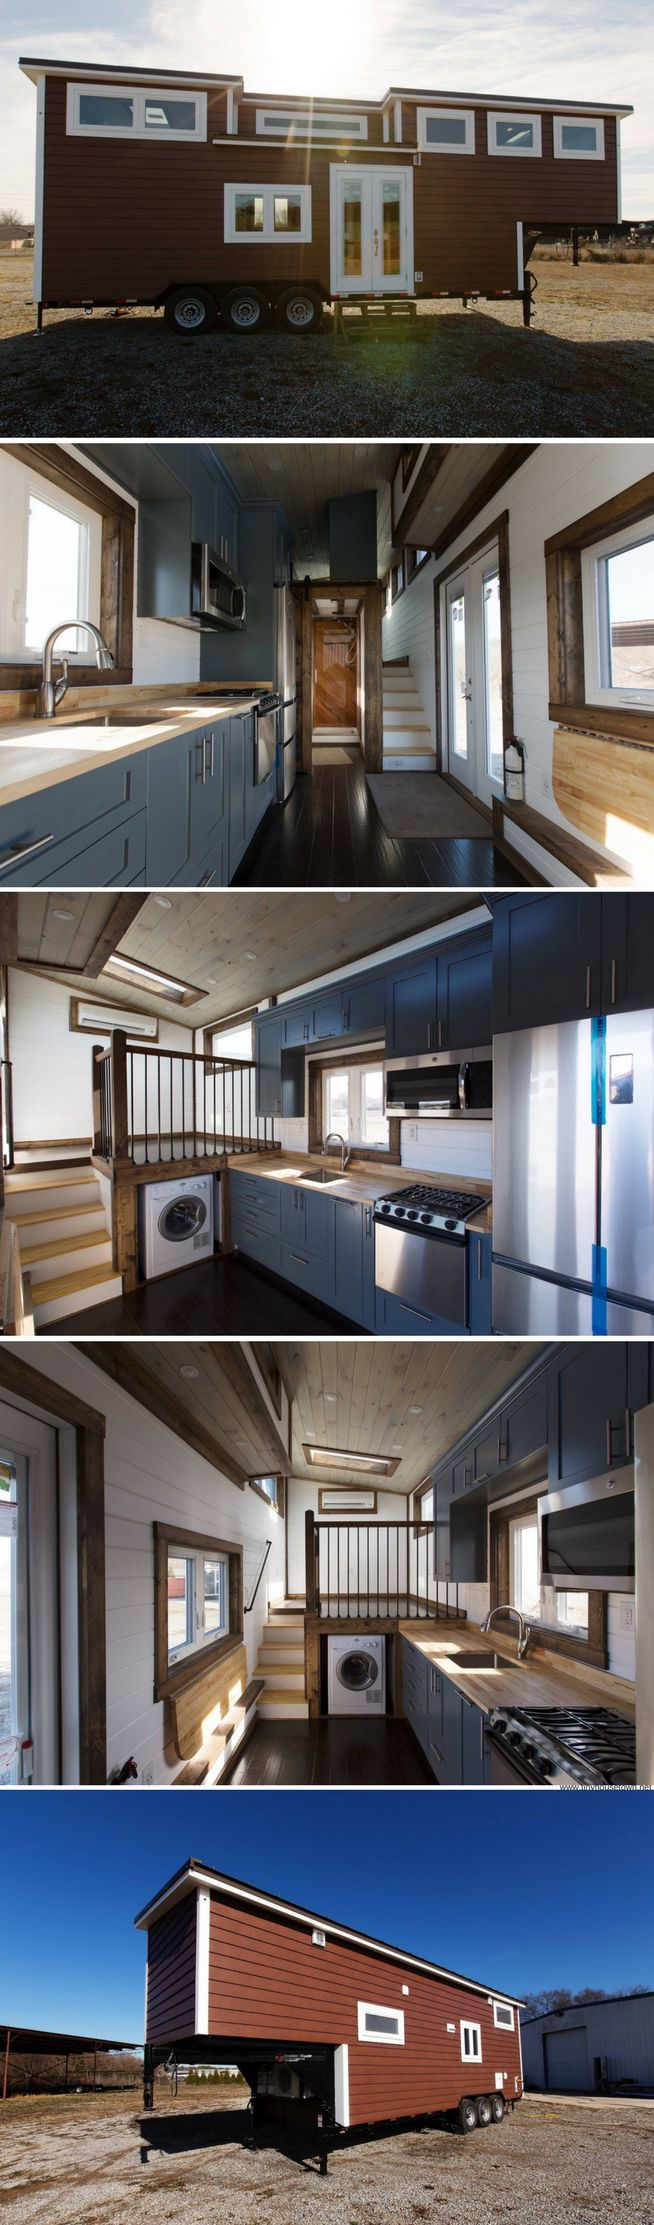 The lookout v2 from tiny house chattanooga home decor for The lookout tiny house